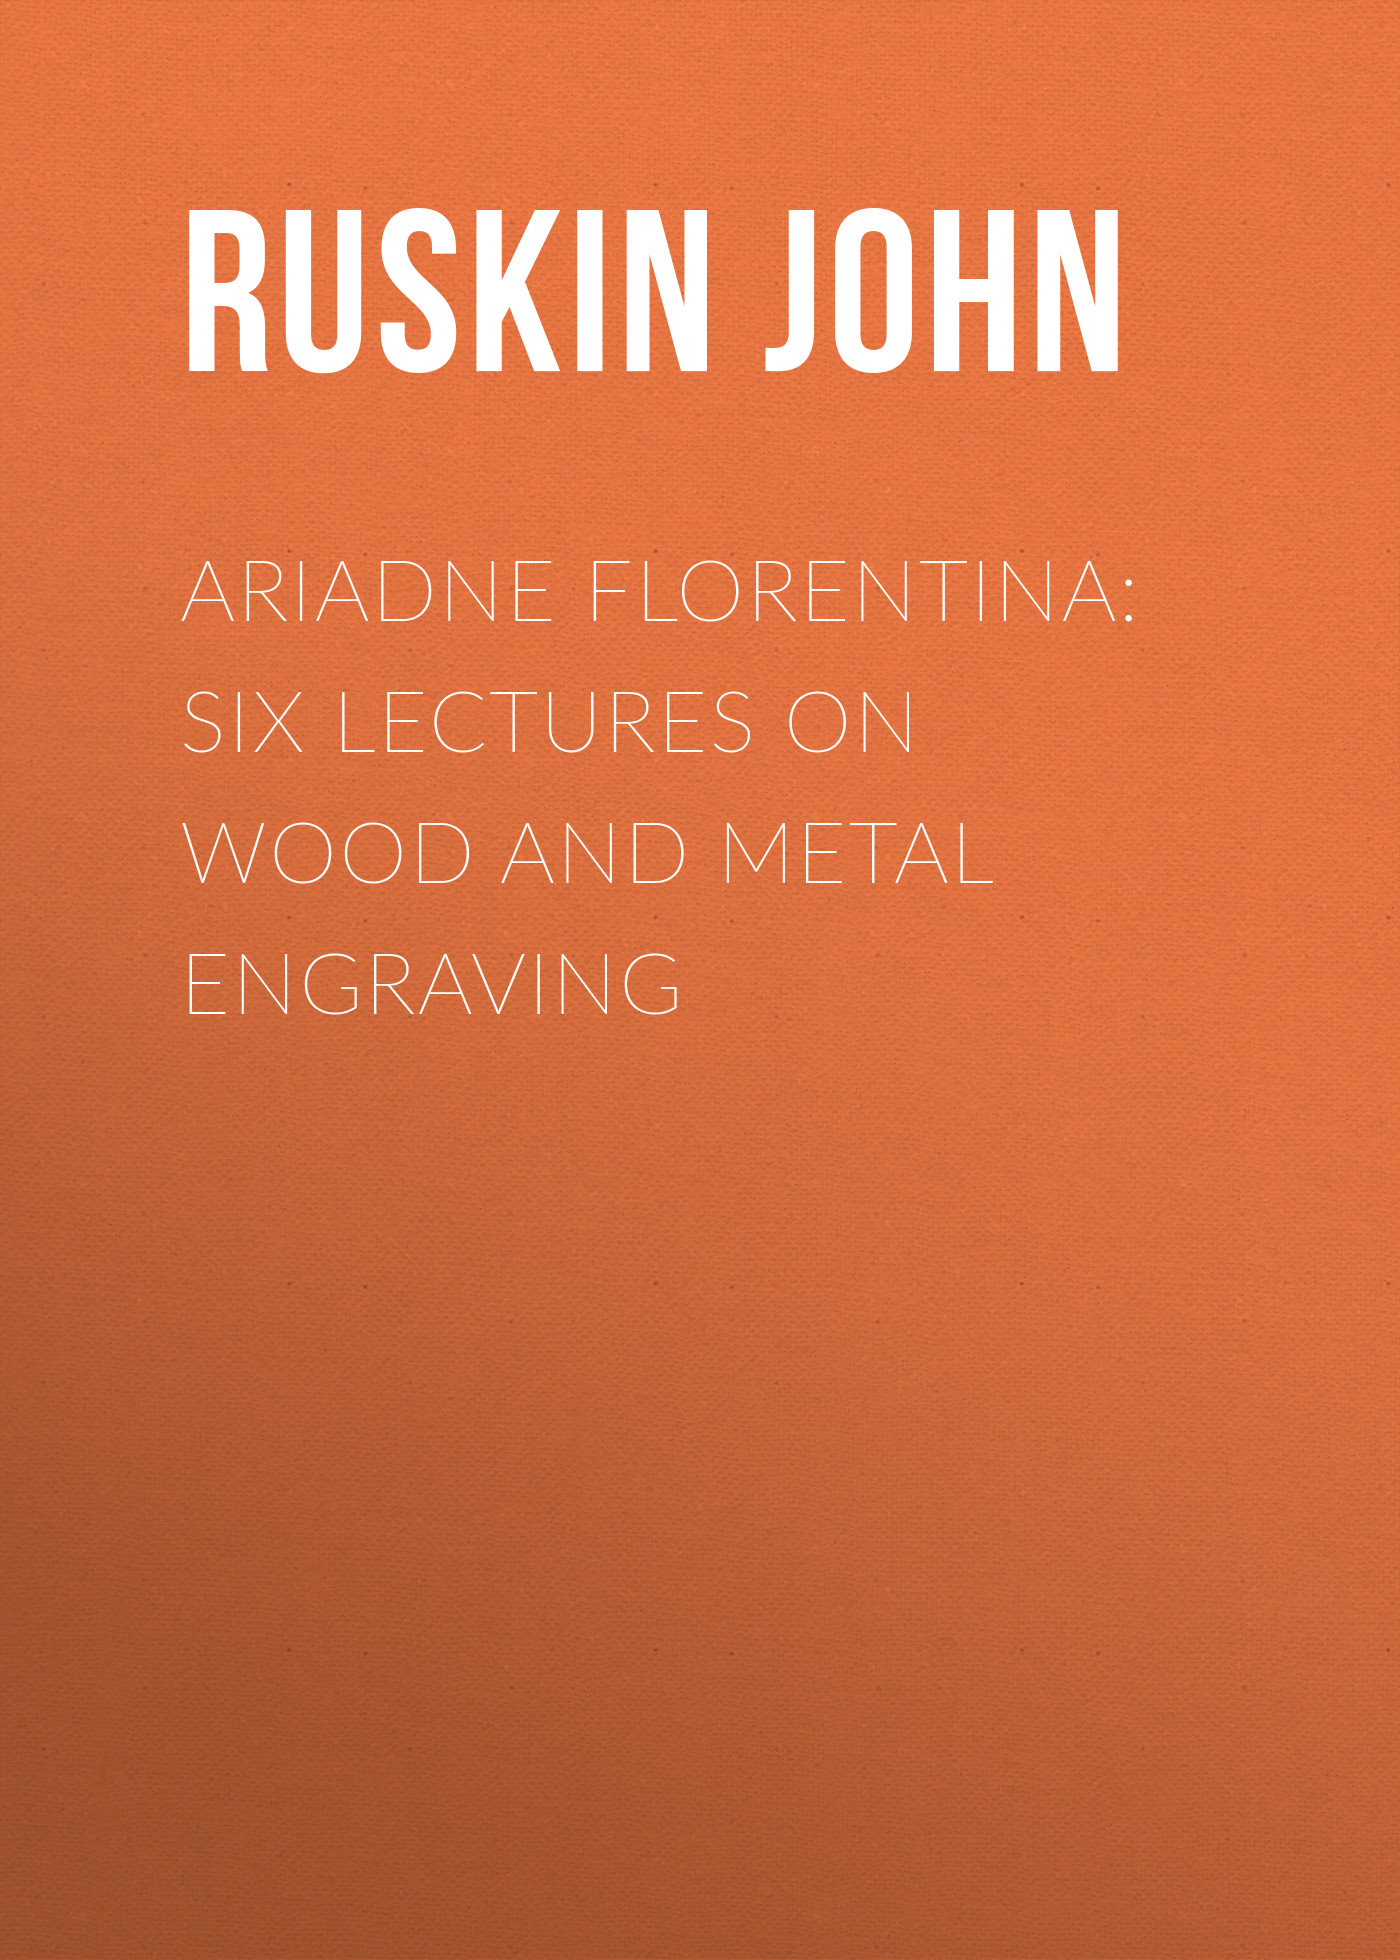 Ruskin John Ariadne Florentina: Six Lectures on Wood and Metal Engraving